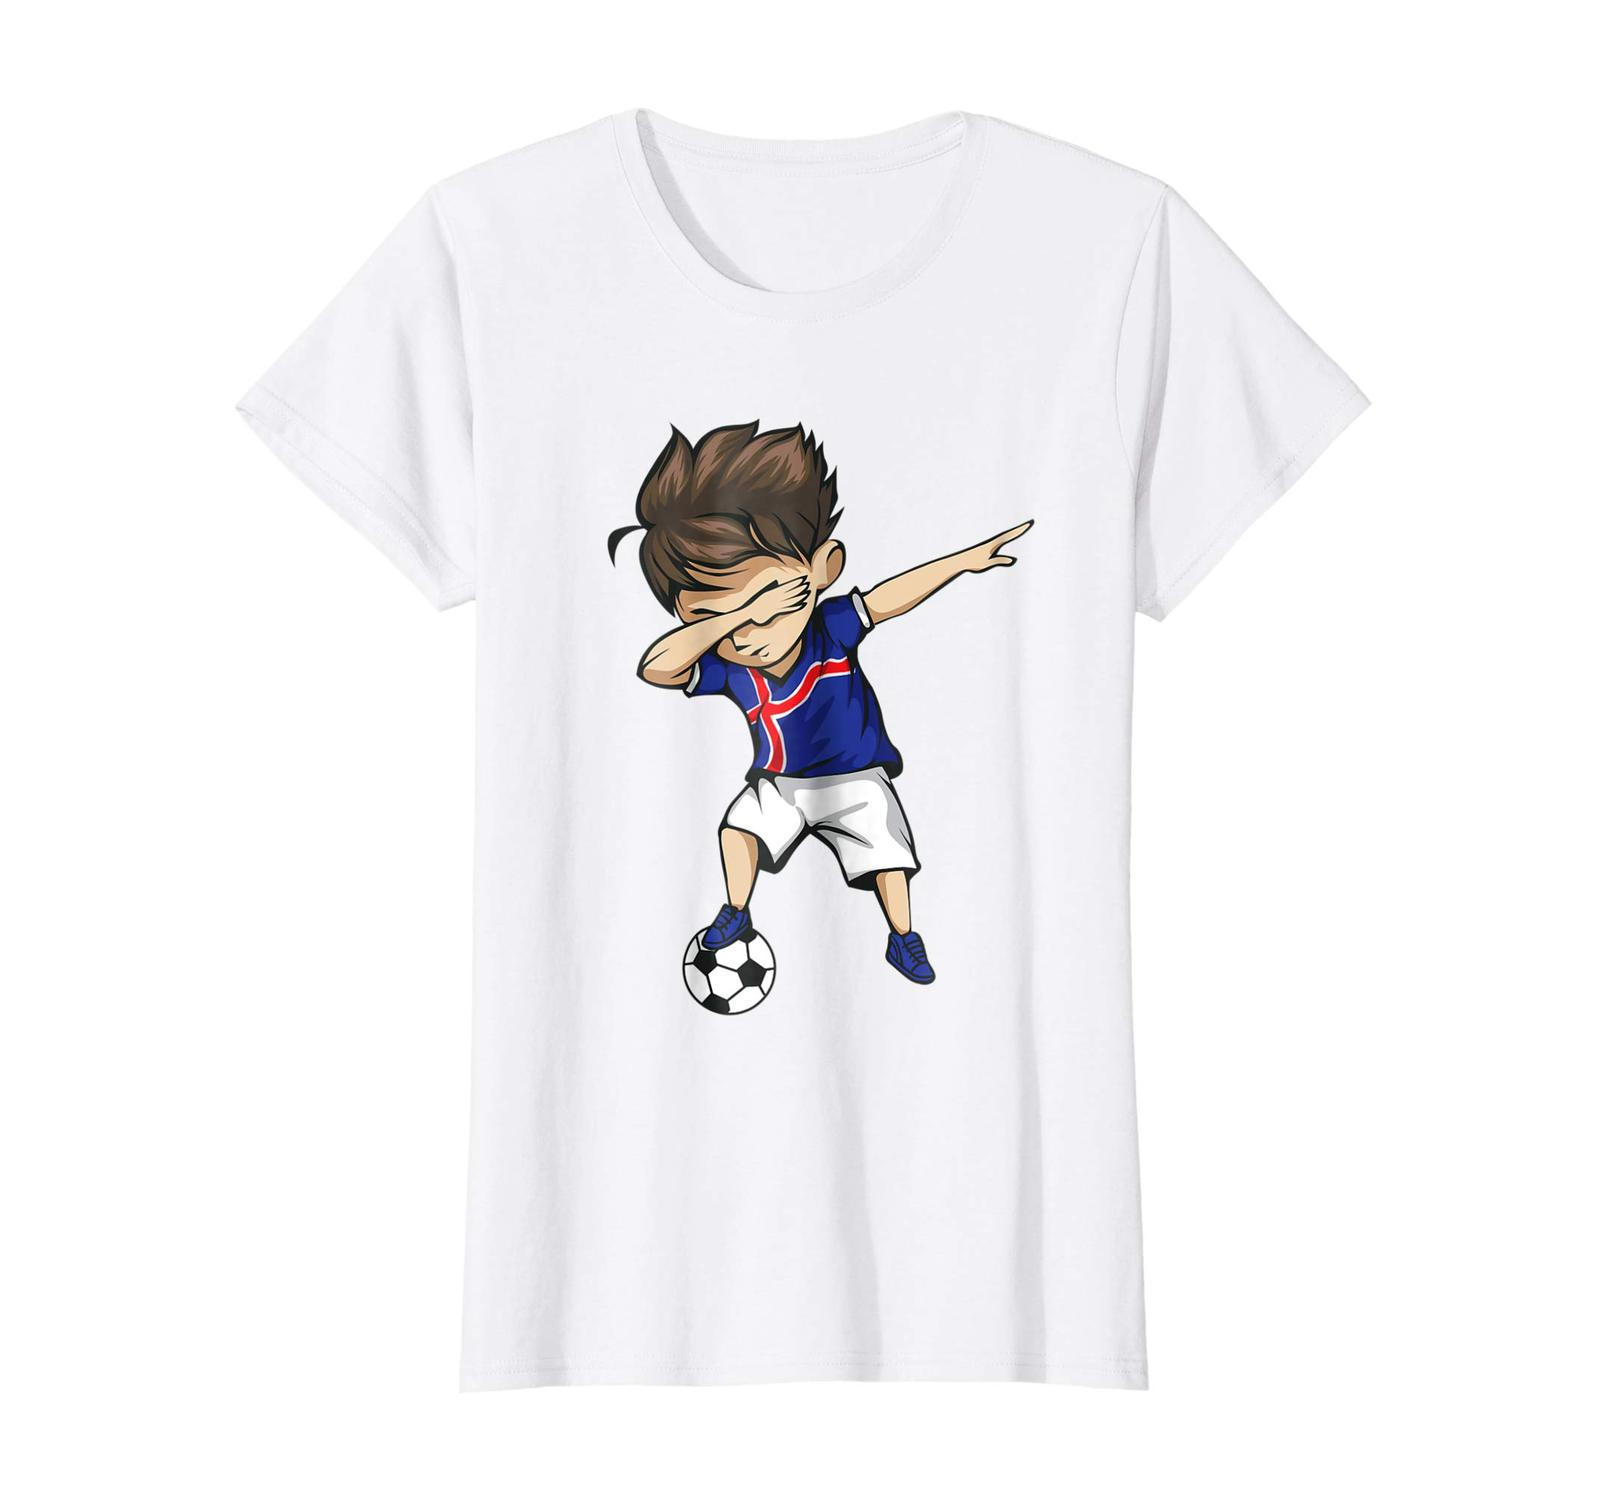 35a0f3c94 Sport Shirts - Dabbing Soccer Boy Iceland and 50 similar items.  A1zdawwgrcl. cla 7c2140 2000 7c81itho8xl4l.png 7c0 0 2140 2000 0.0 0.0  2140.0 2000.0